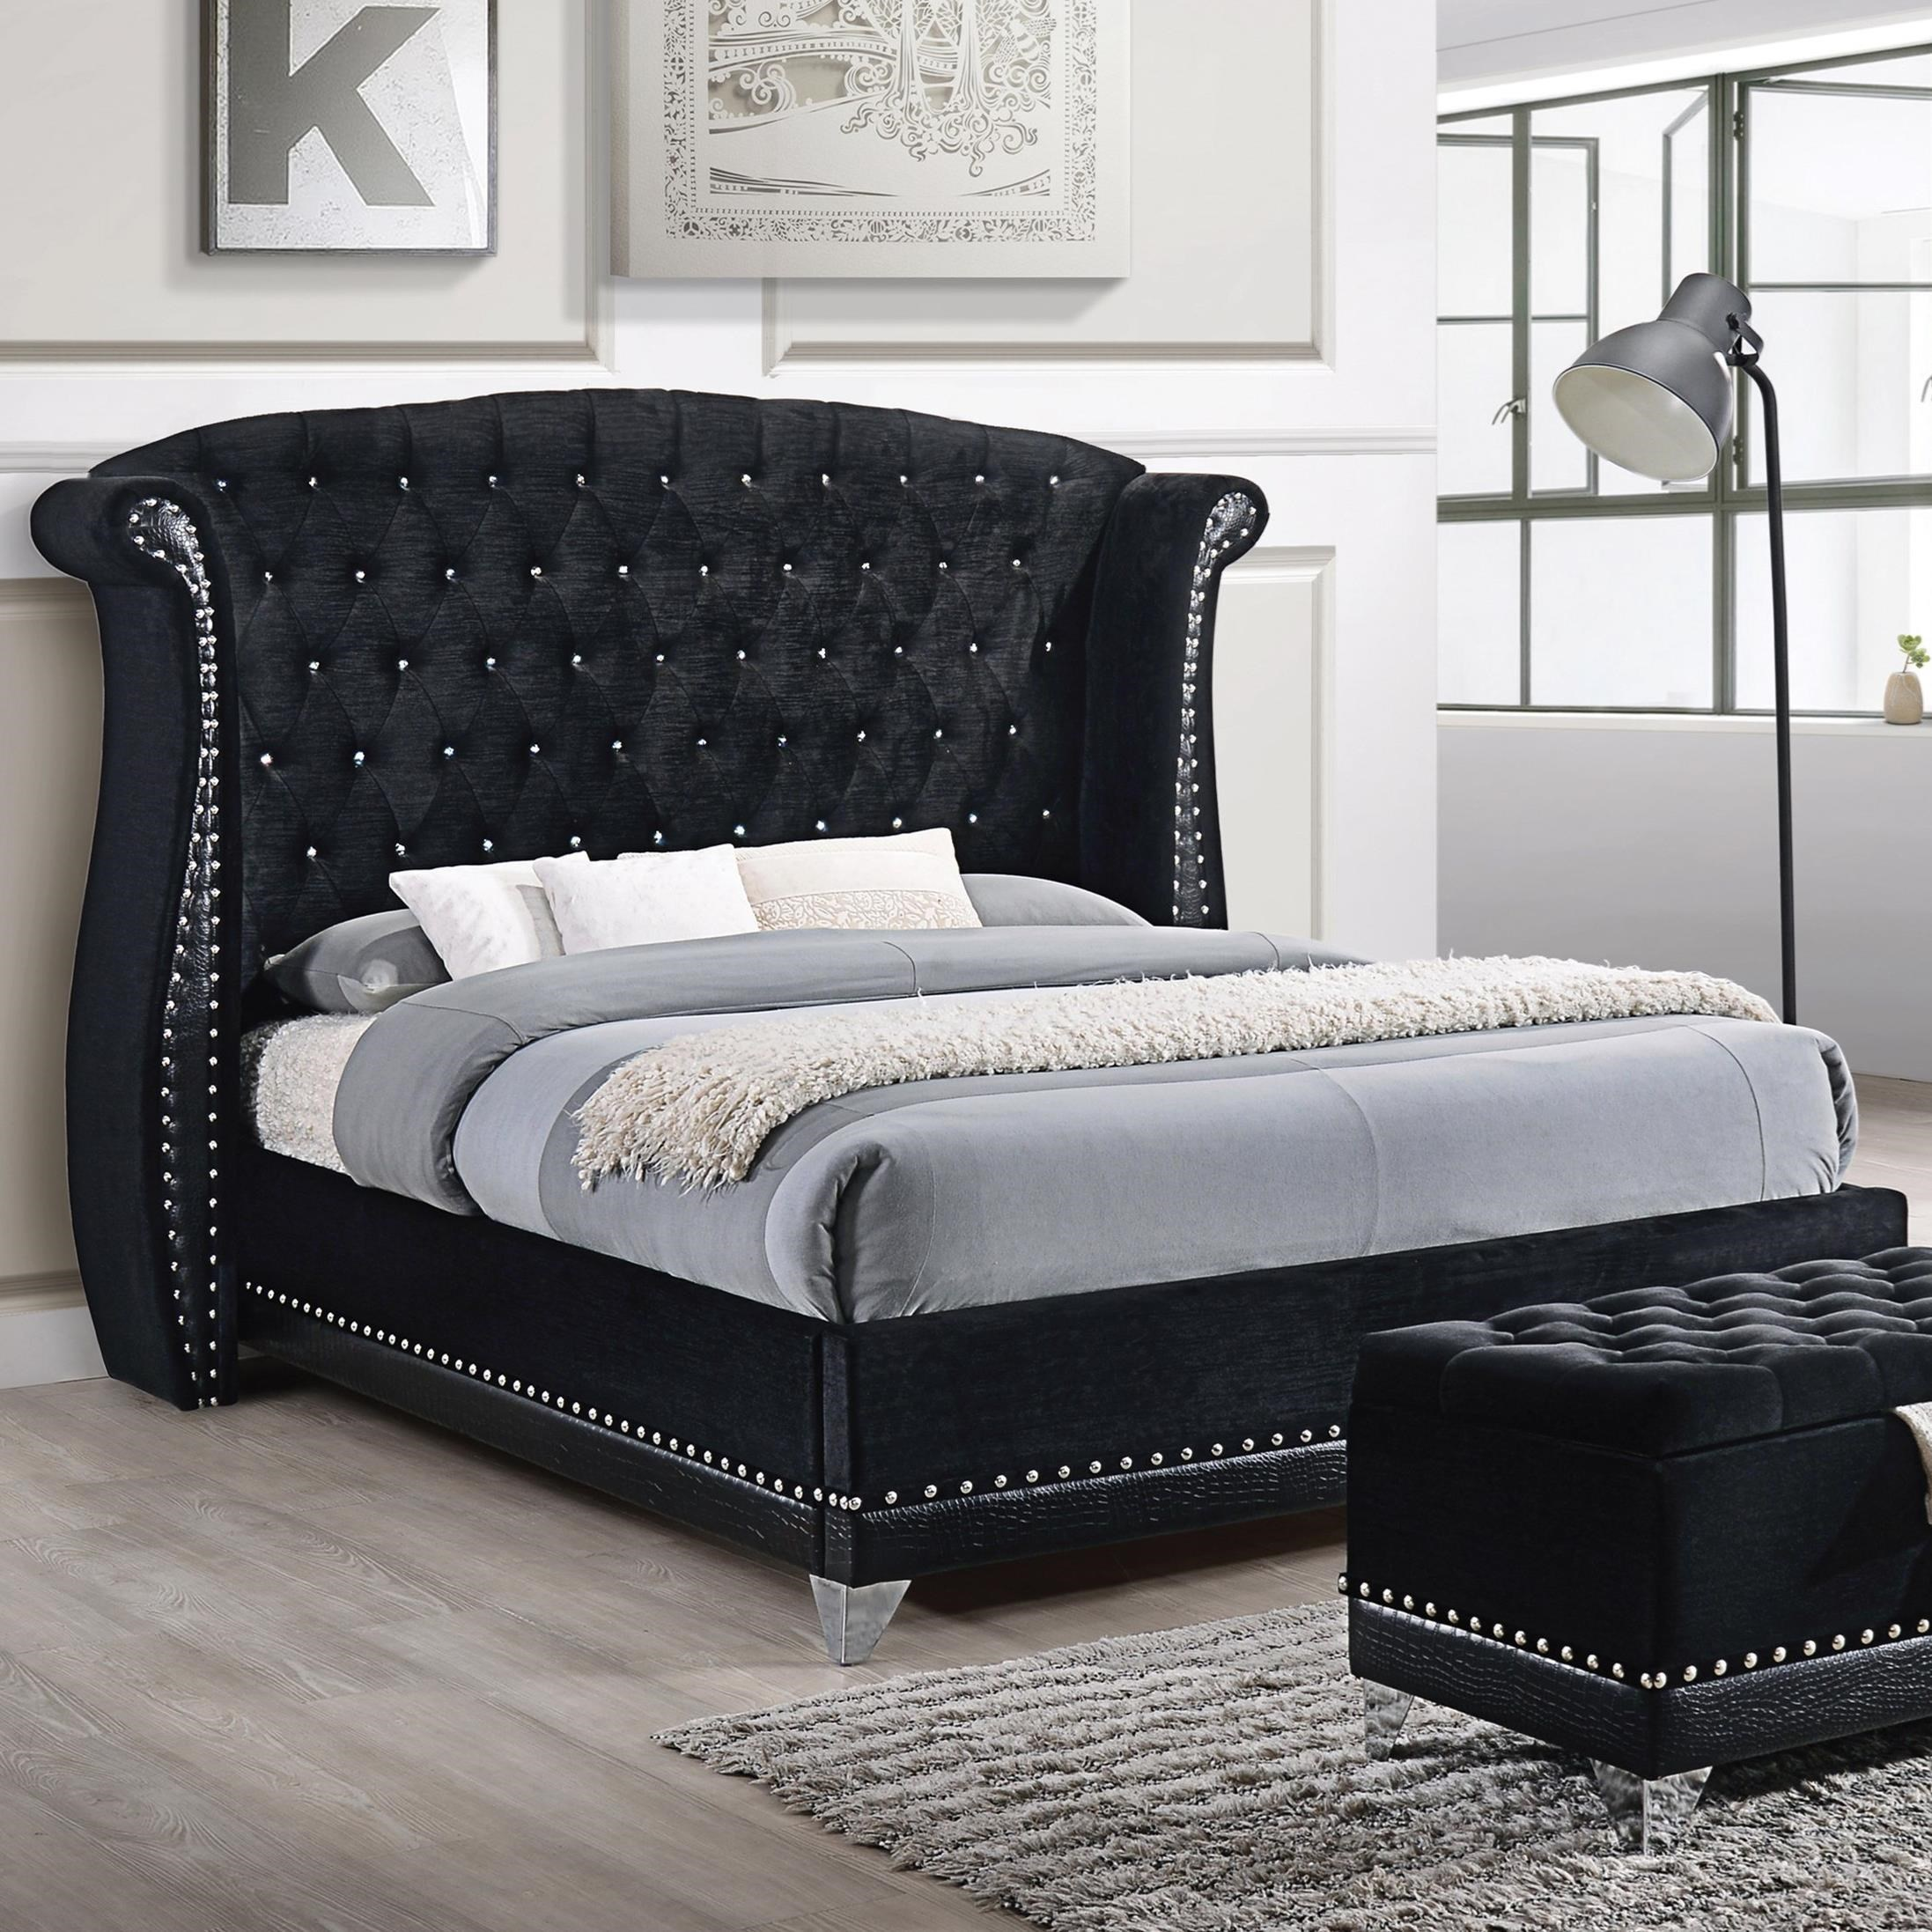 Barzini California King Bed by Coaster at Northeast Factory Direct